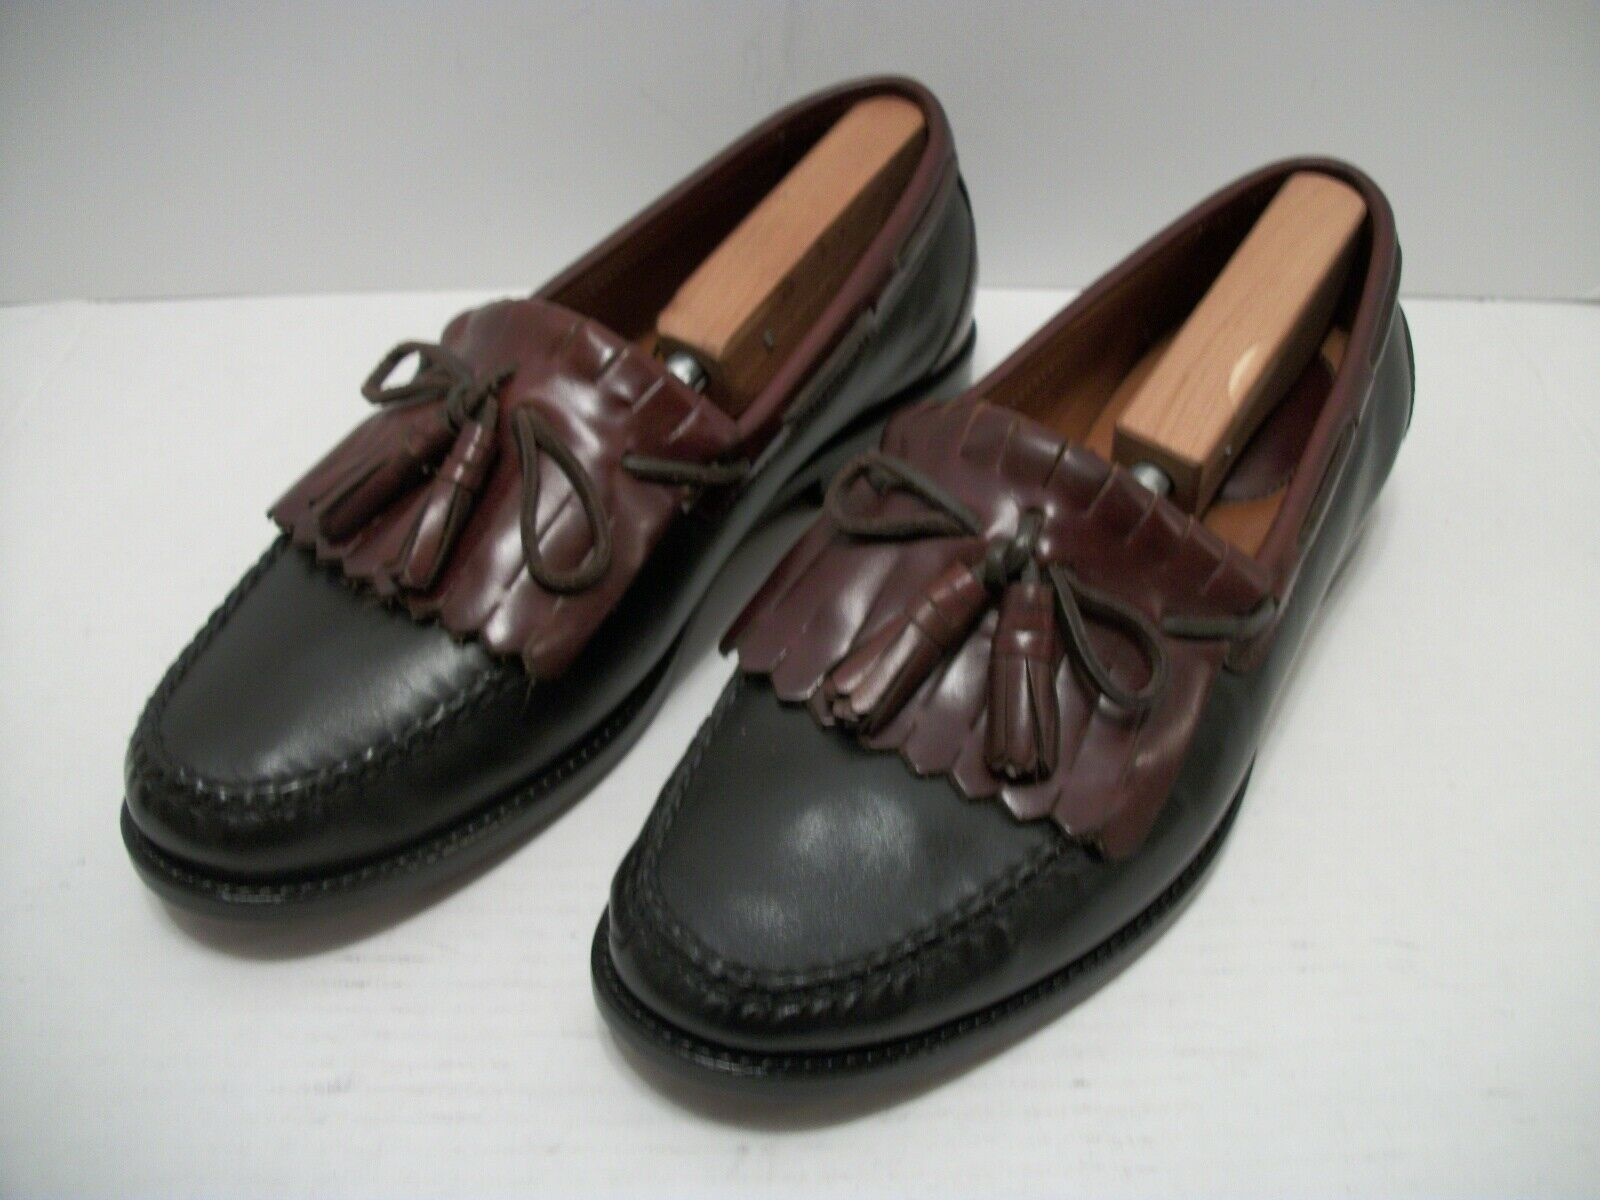 Mens Johnston & Murphy Blk Brn Leather Slip-on Moc Toe Kilt Tassel Loafer 10.5W